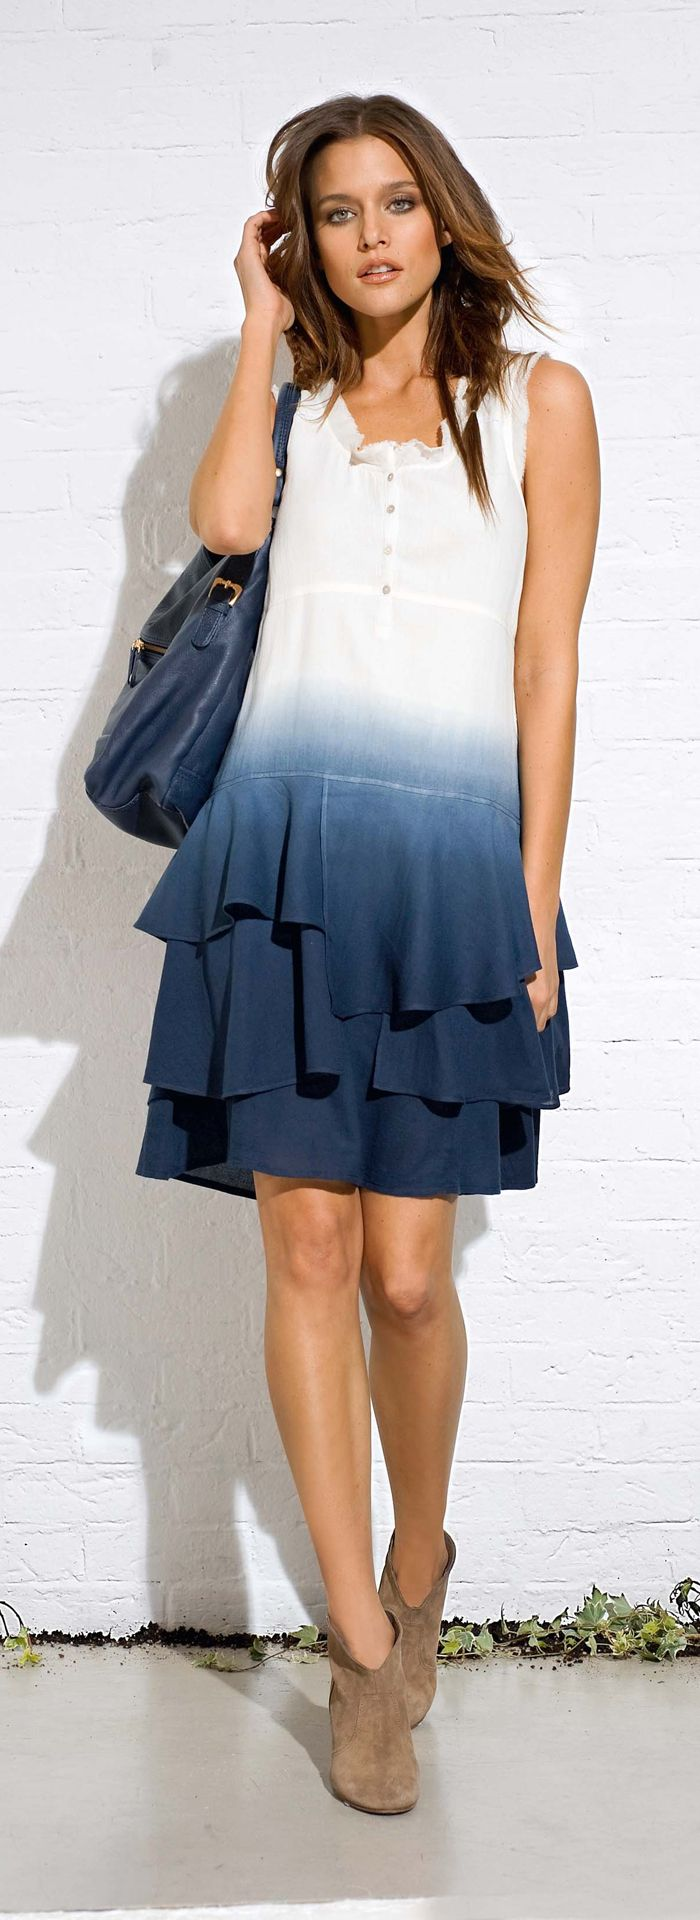 """Ombre dyed dress - CLICK TO READ """"Trends for Spring & Summer: Clothes for Real Women Over 40"""" at http://boomerinas.com/2013/04/trends-for-spring-summer-clothes-for-real-women-over-40-2/"""